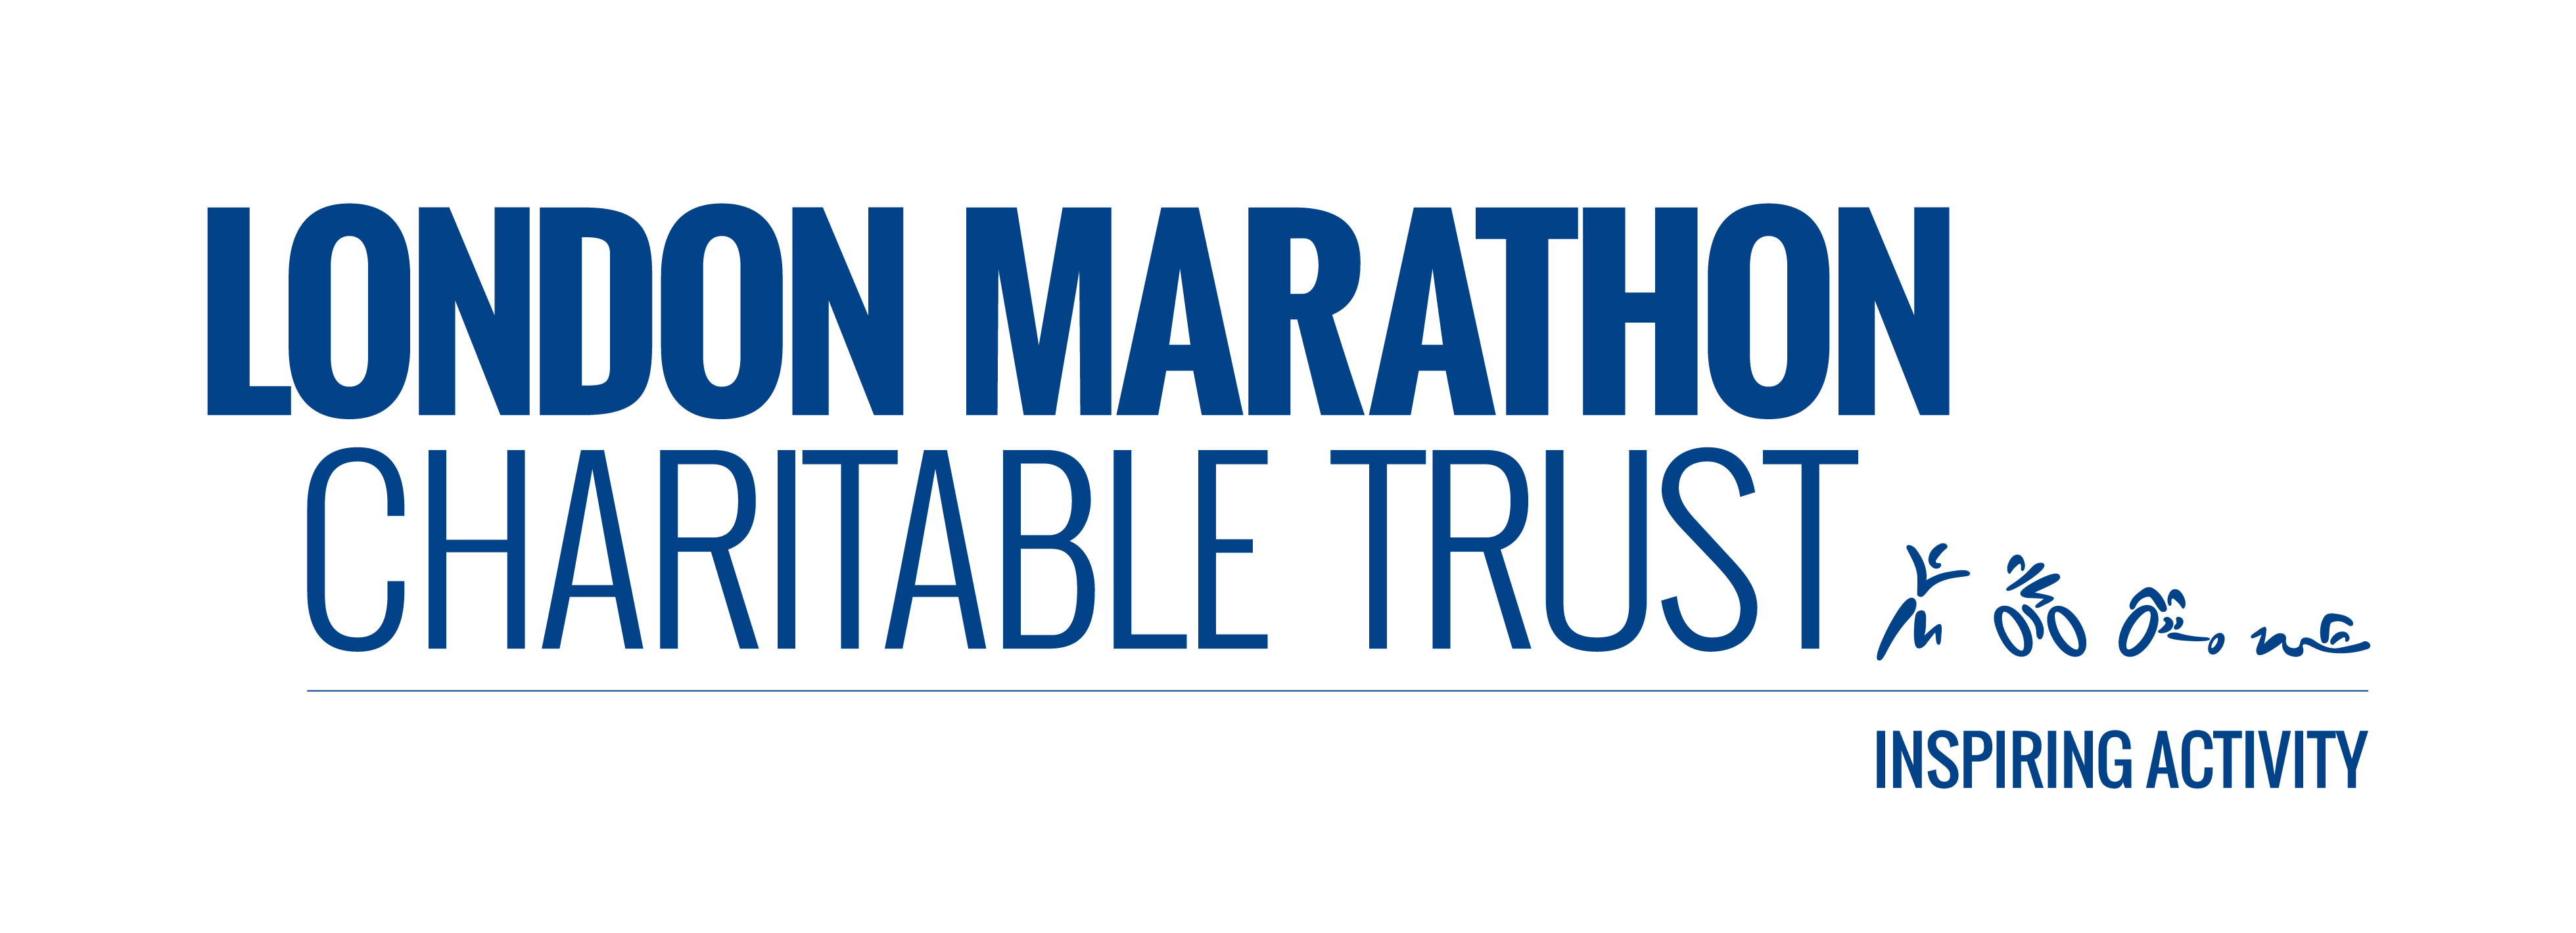 London Marathon Charitable Trust ()